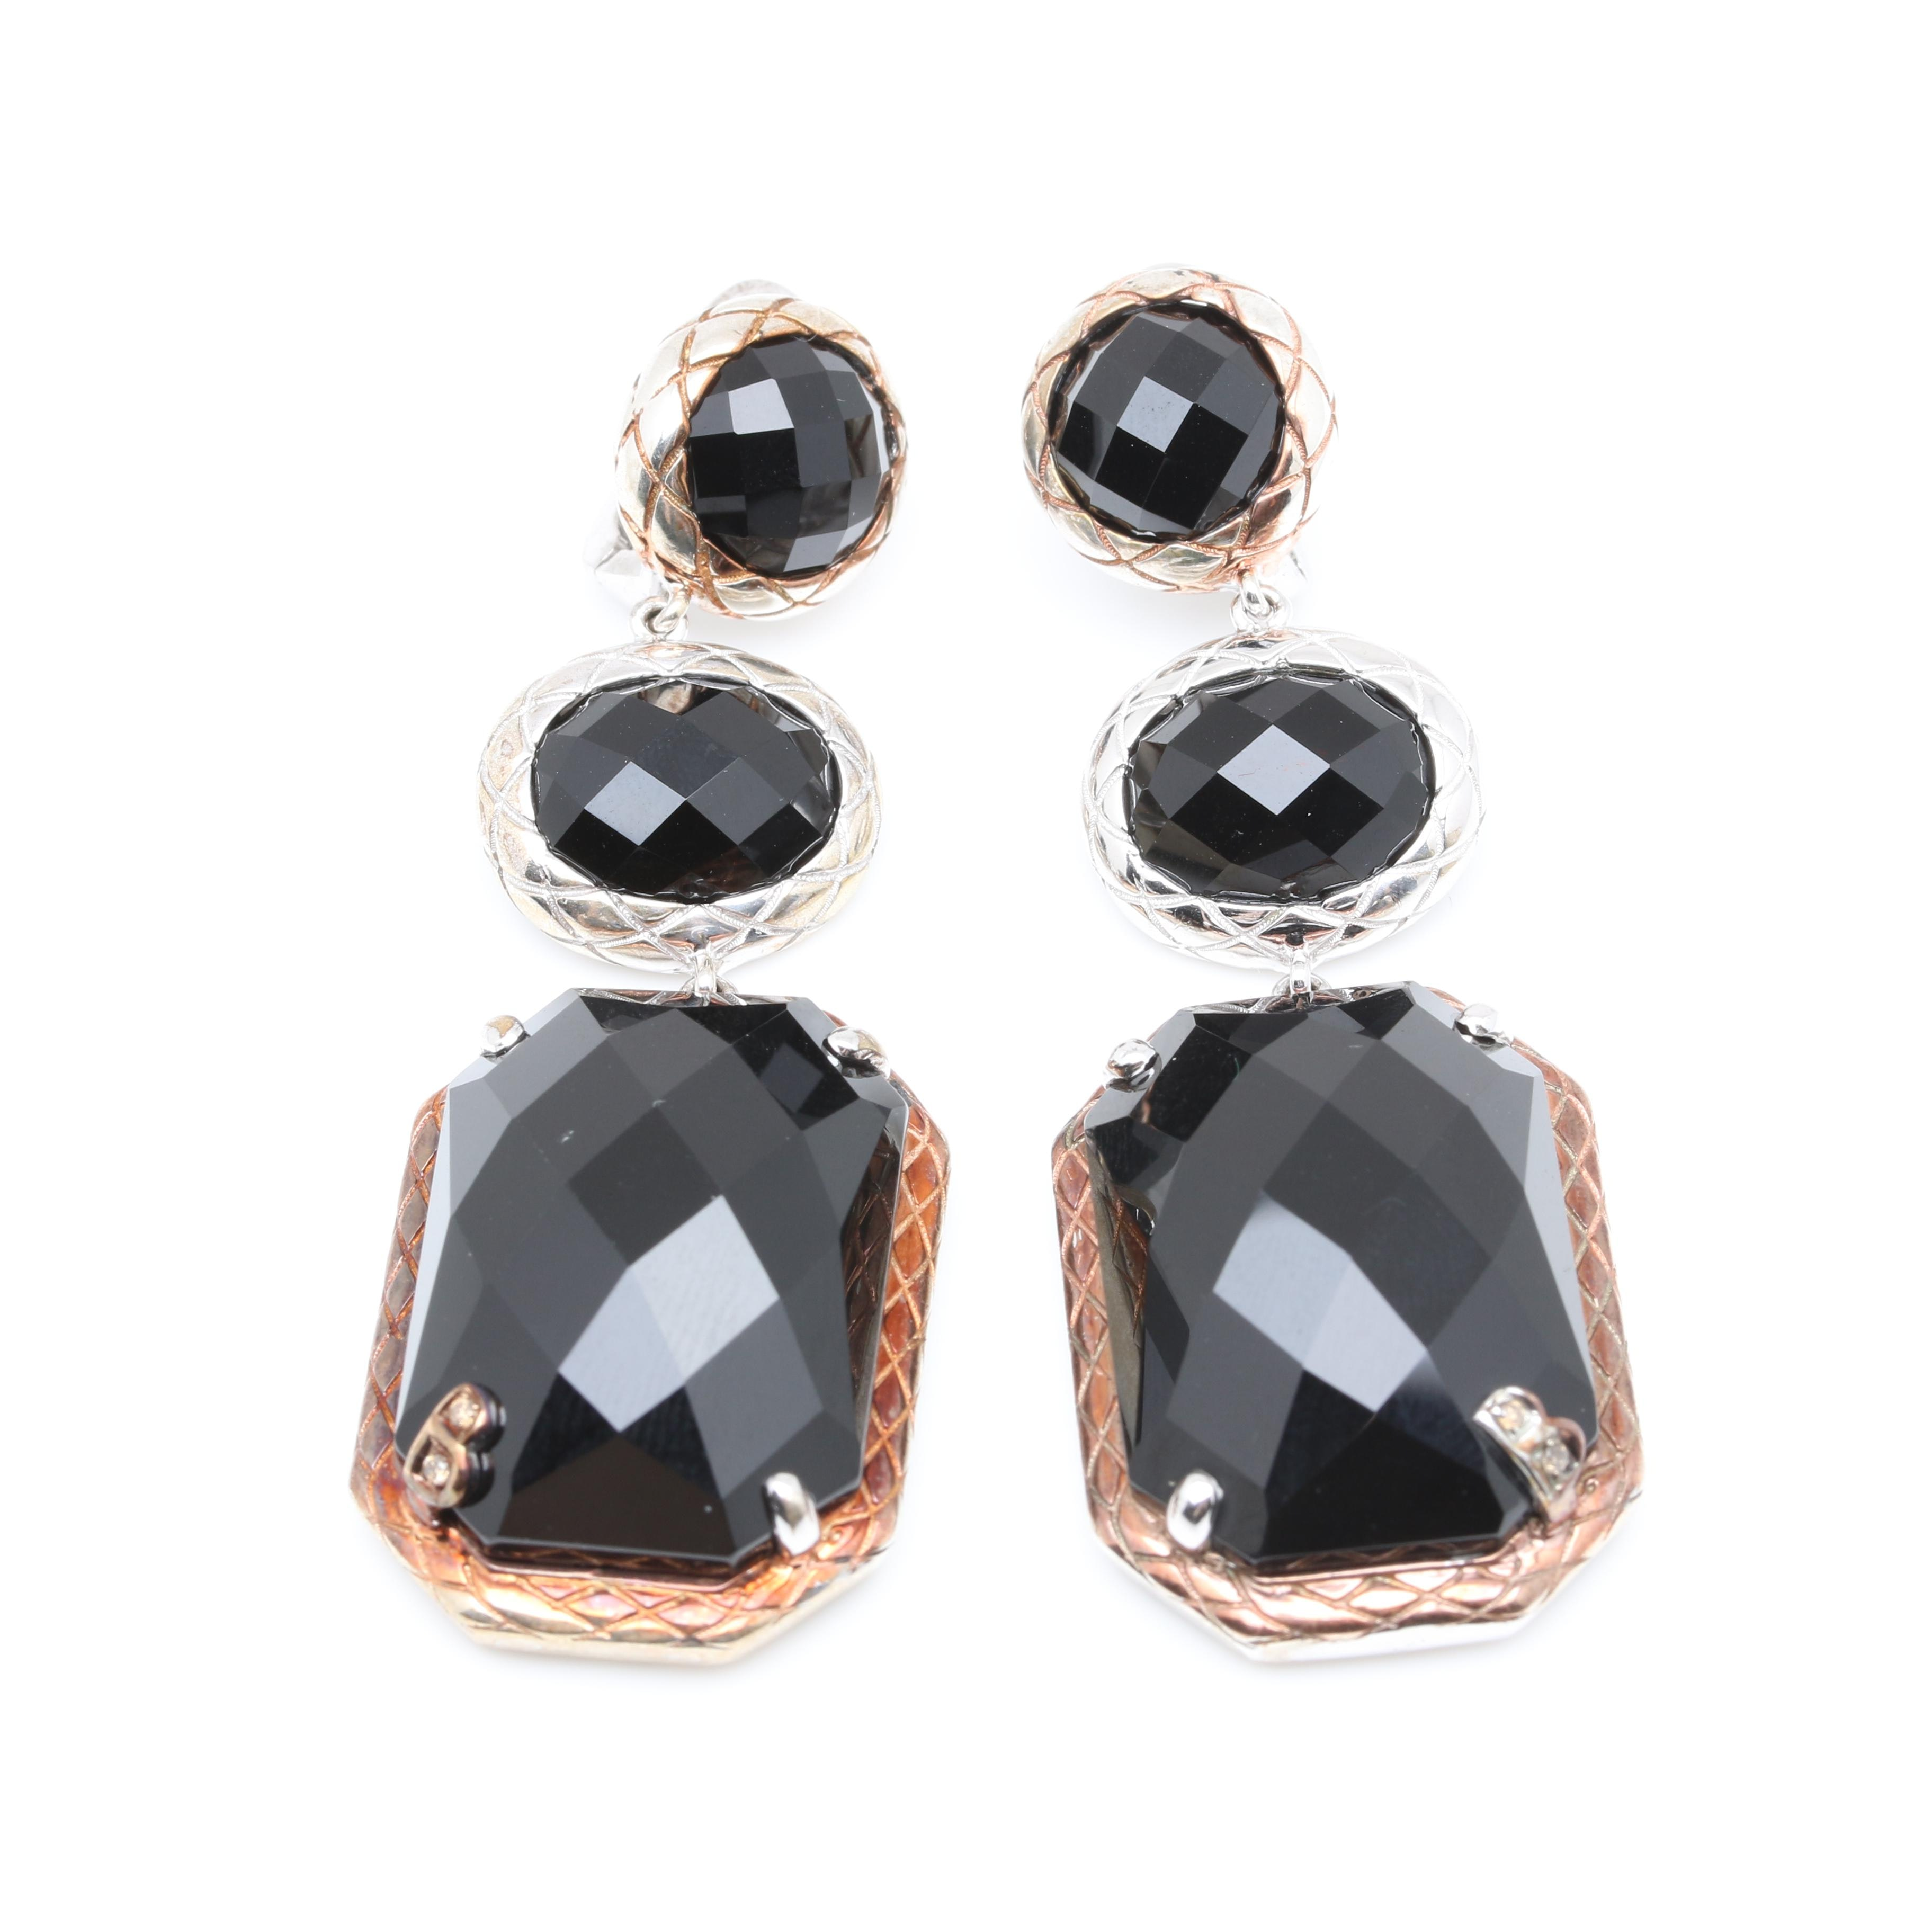 Bellari Sterling Silver Black Onyx Dangle Earrings with 18K Rose Gold Accents